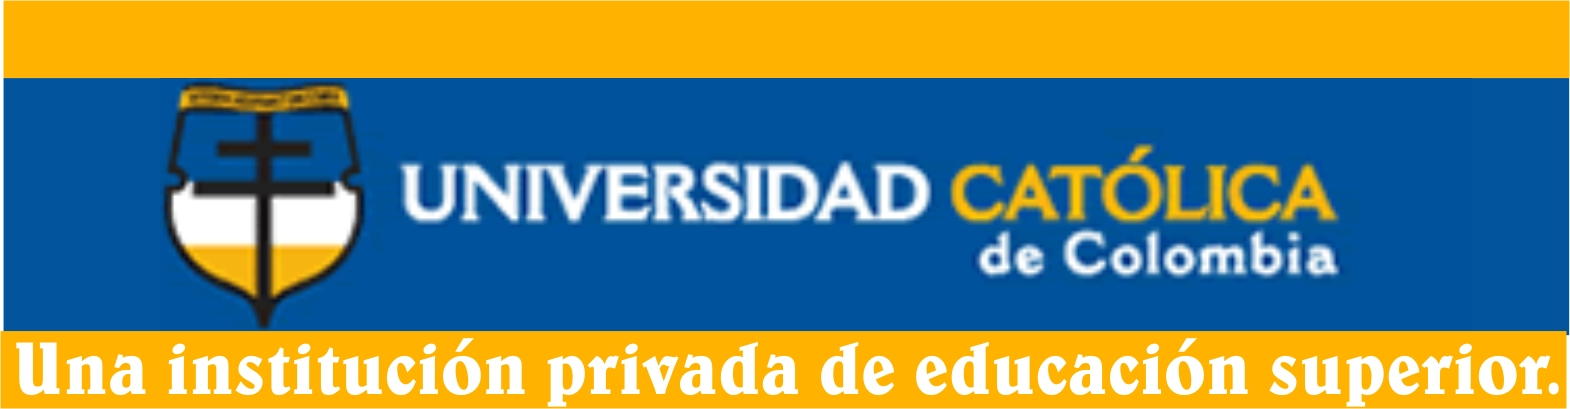 Universidad Católica de colombia Logo photo - 1